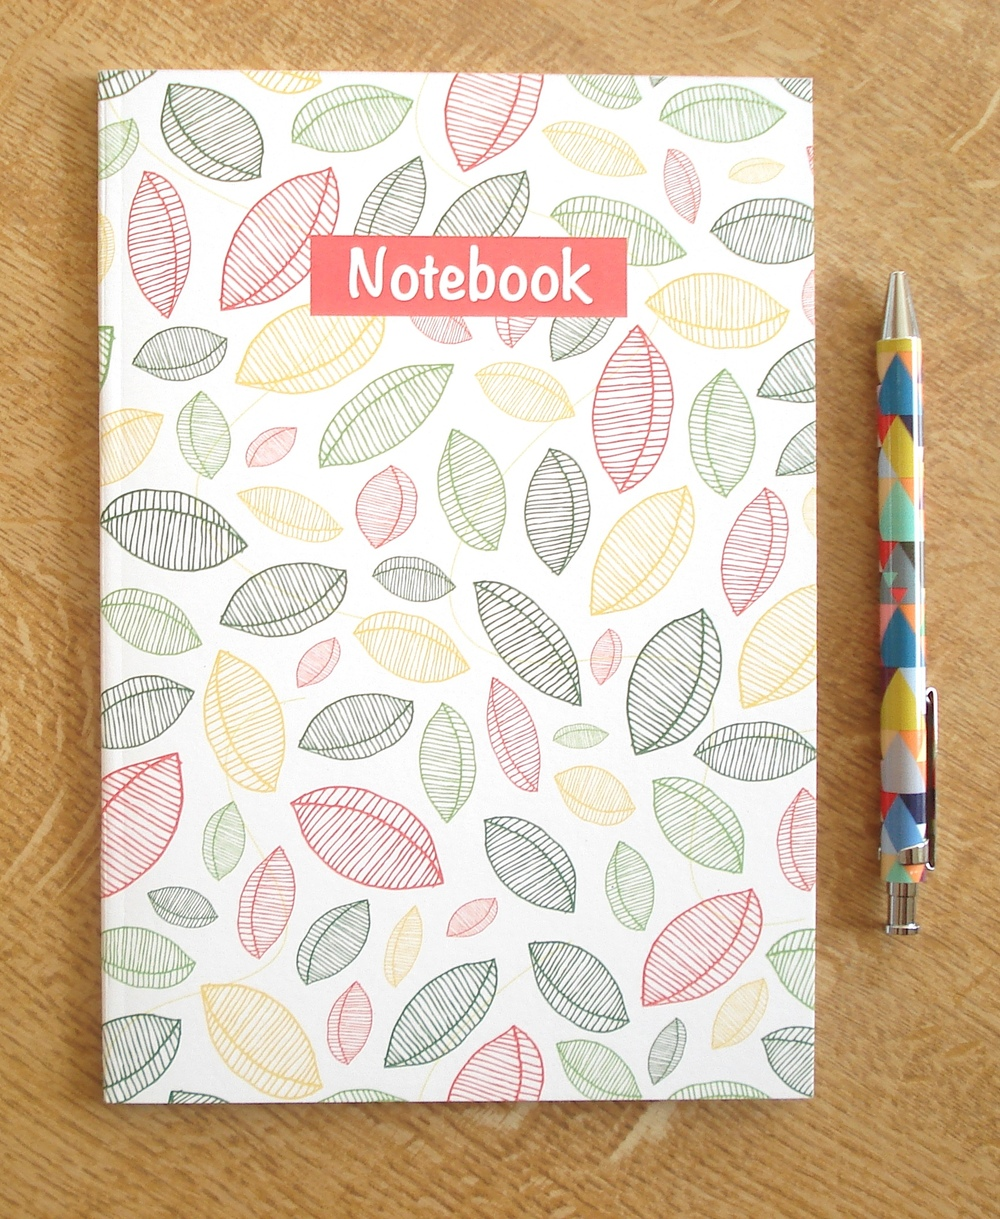 My new notebook is for sale in my Etsy shop here Stacey-Ann Cole Art